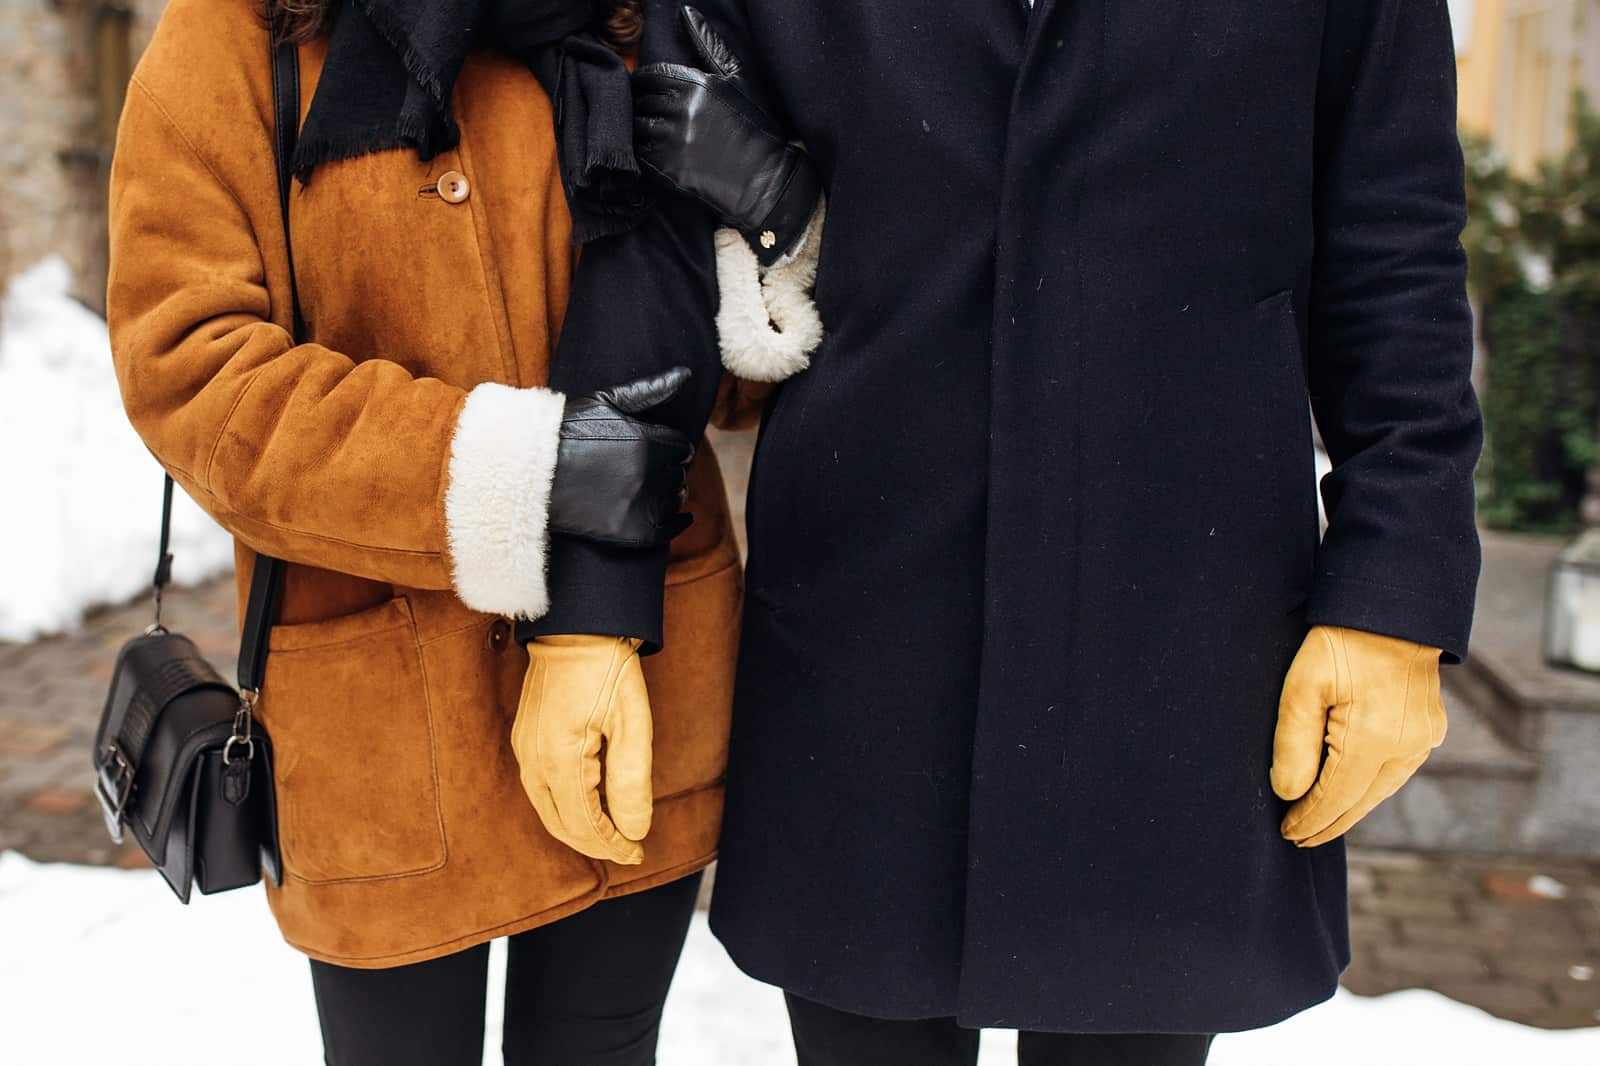 winter couple with coats, gloves and scarf